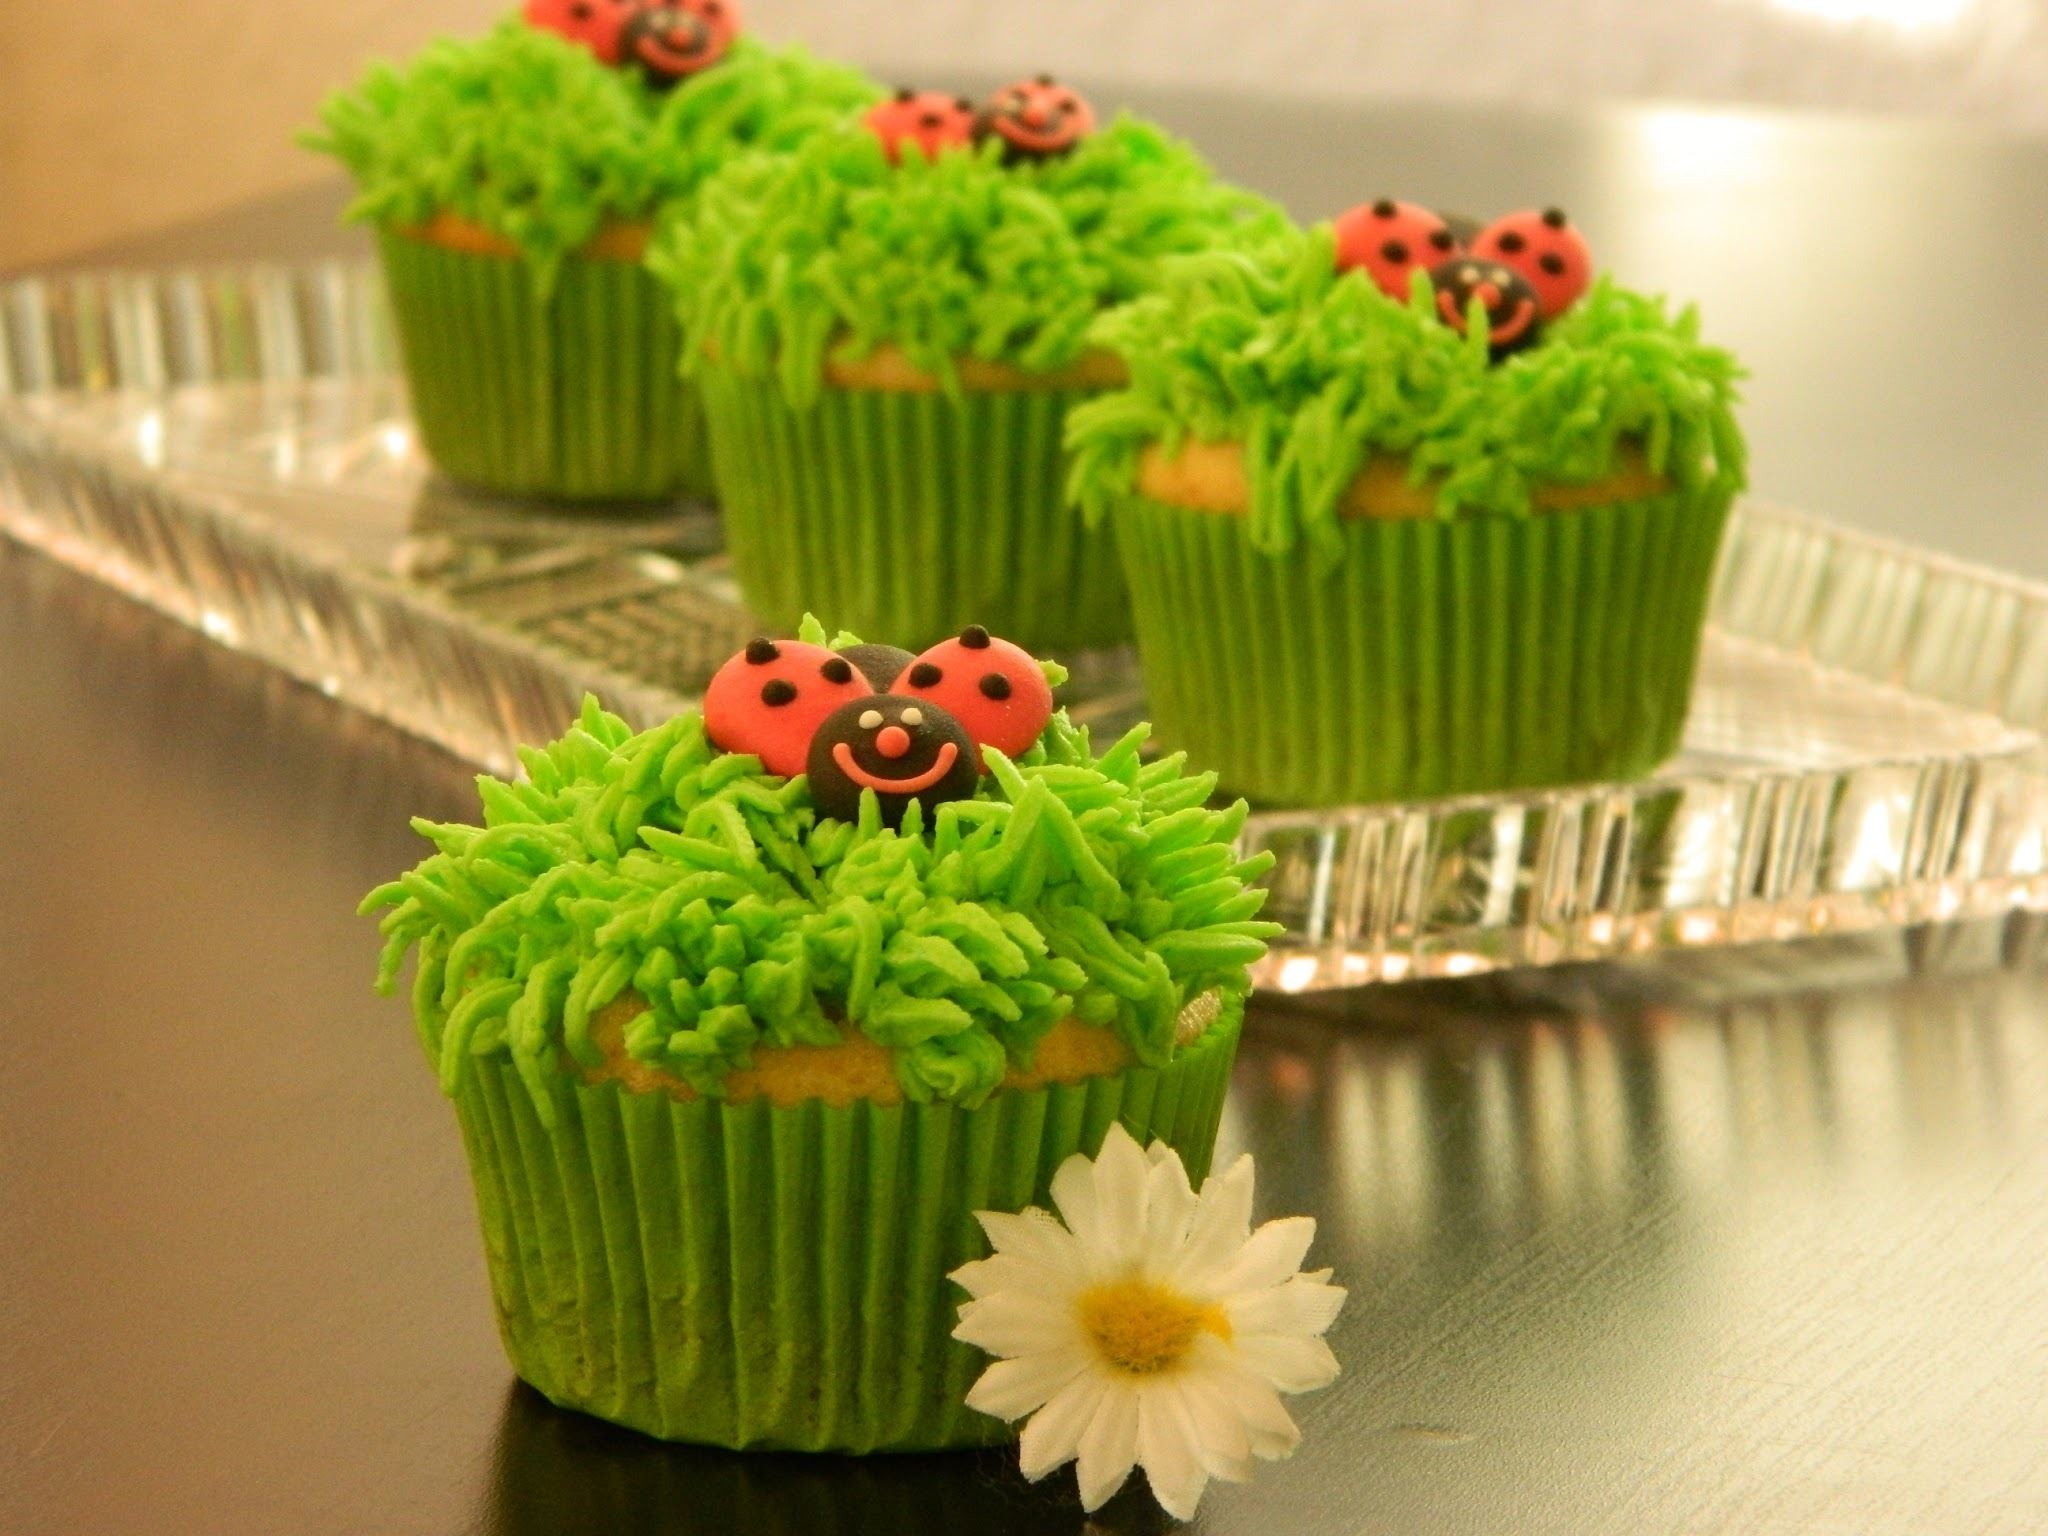 Vanilla Cupcakes with grass shaped frosting. Grastüllen Dekorieren.